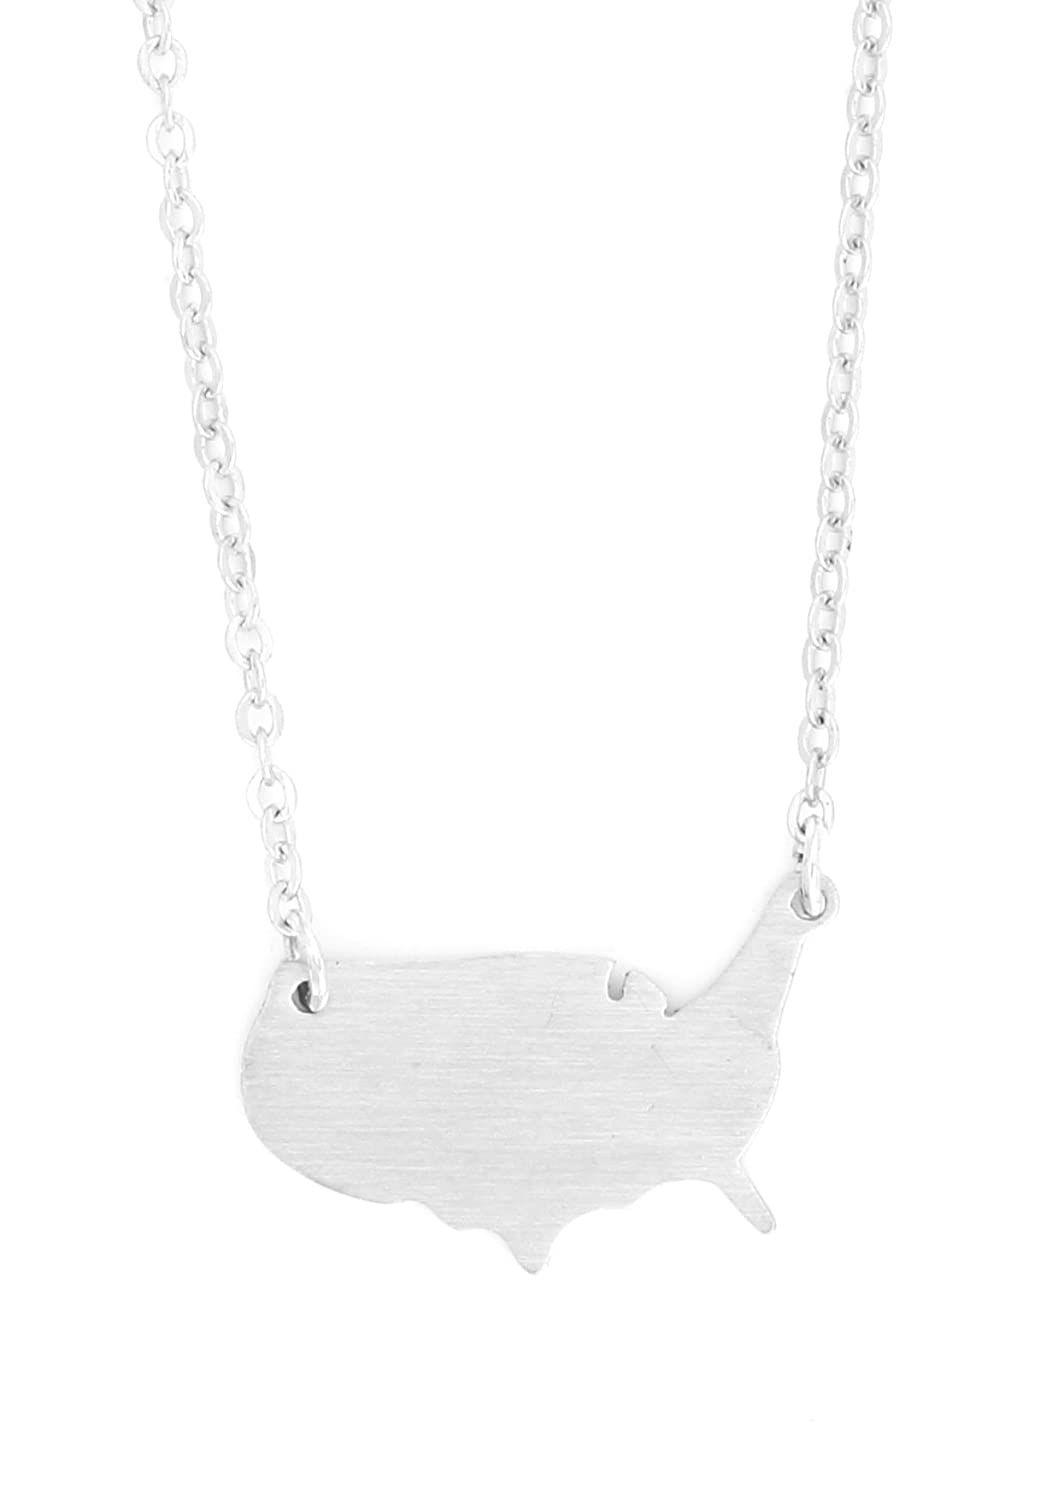 Amazon.com: Magic Metal United States of America Necklace ...